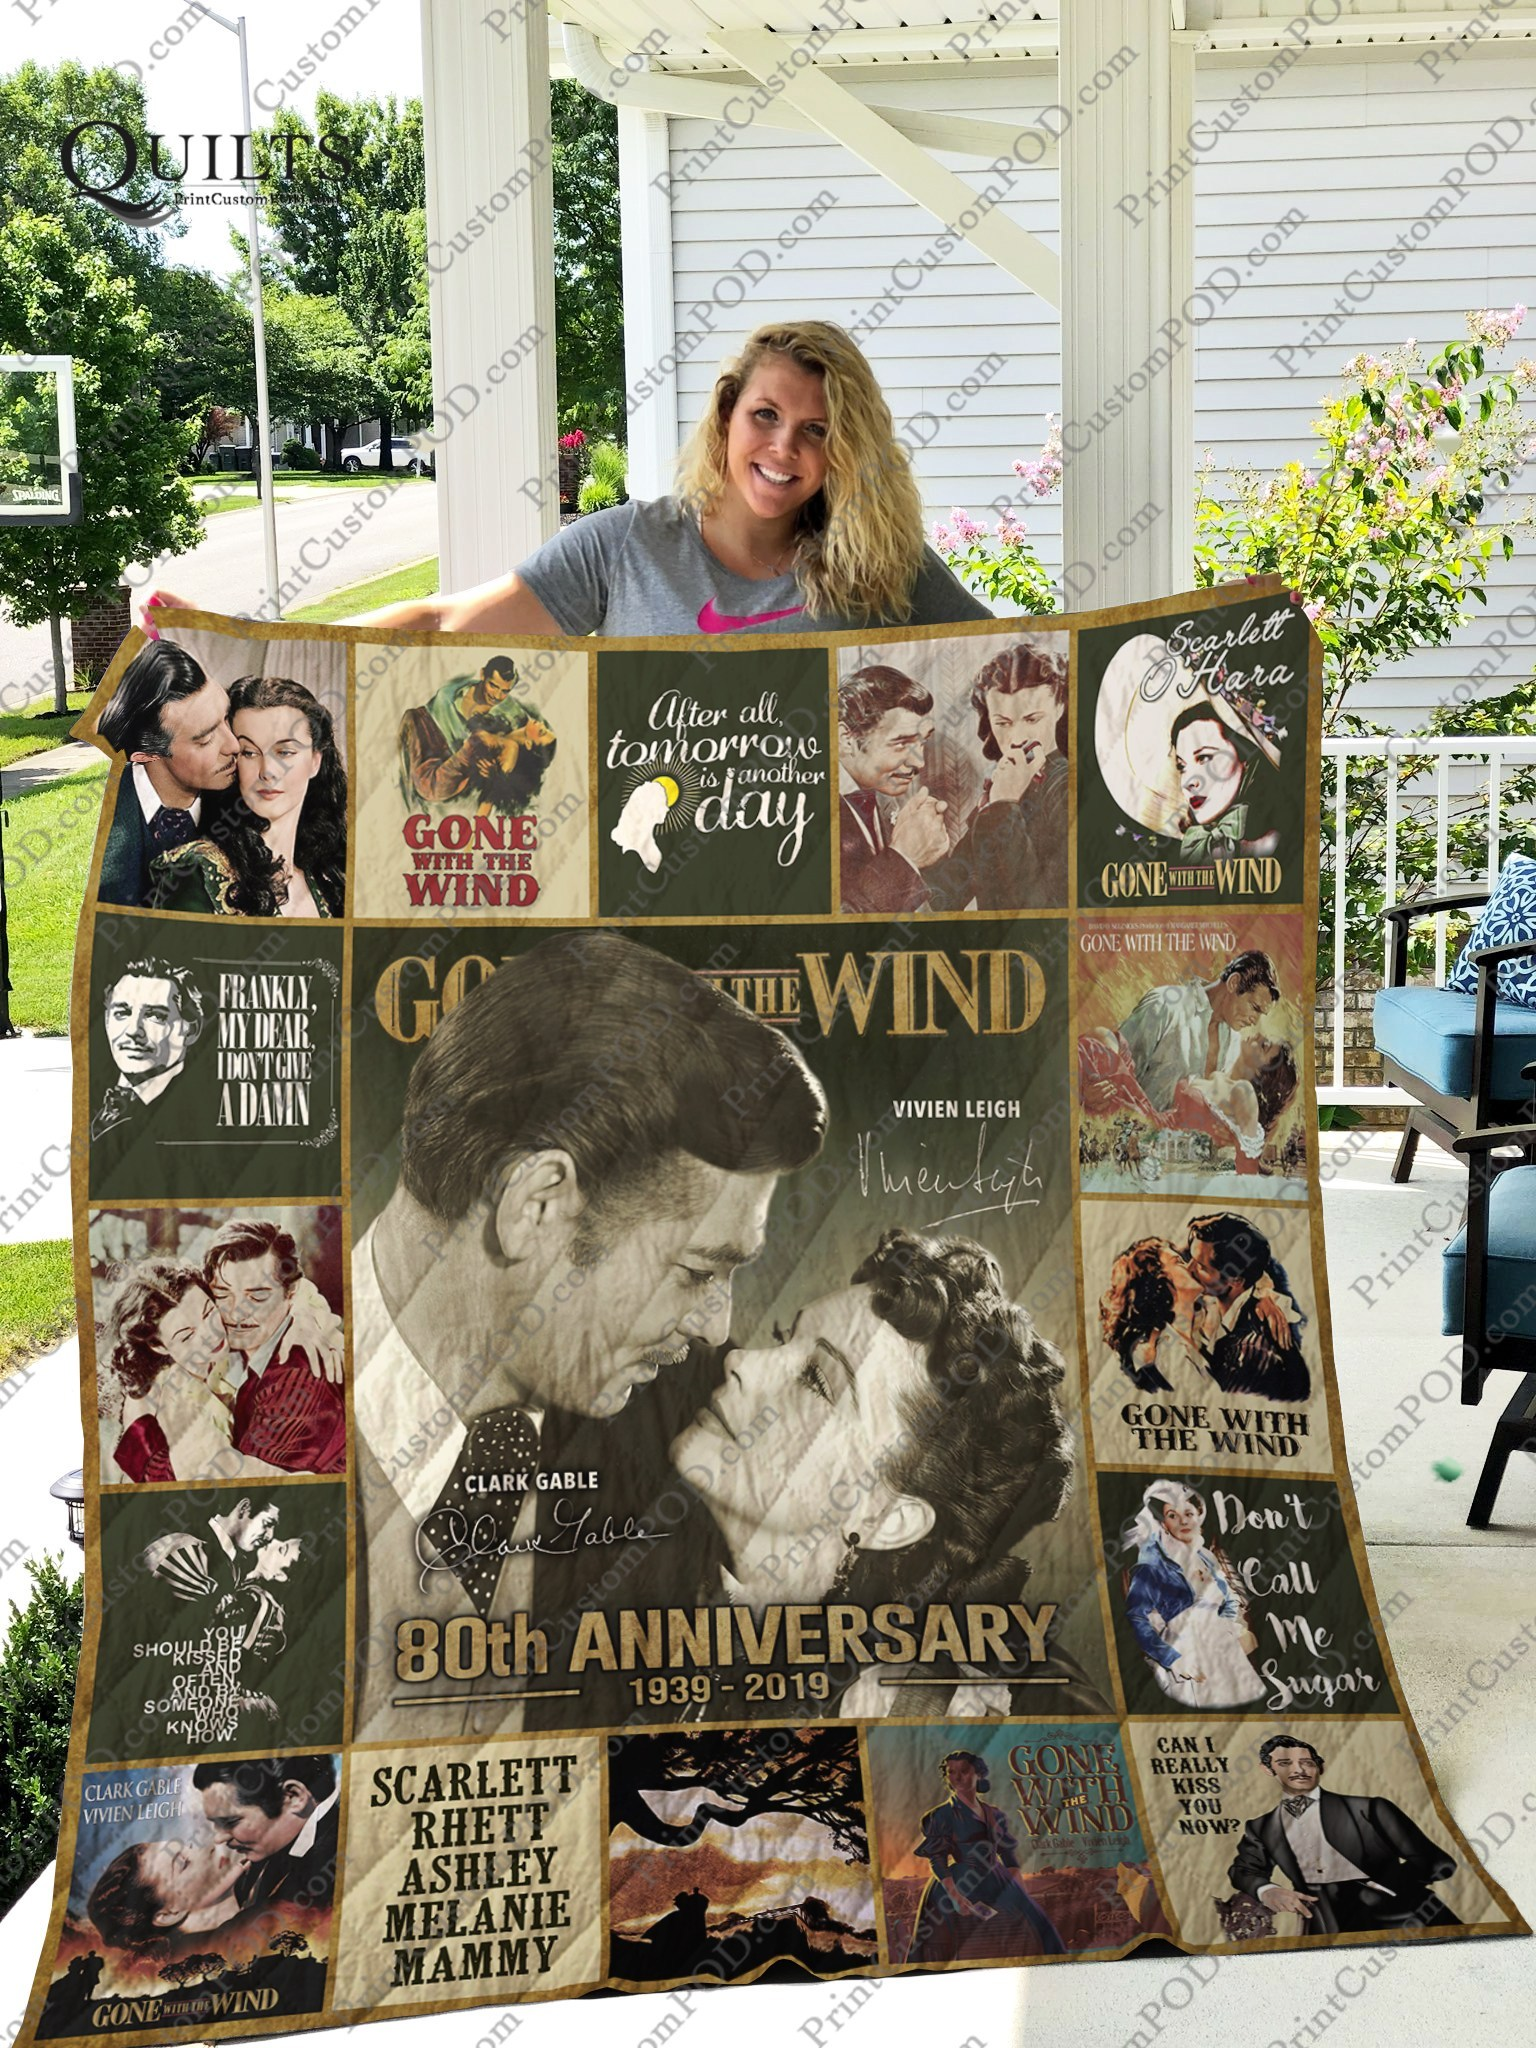 Gone with the wind 80th anniversary quilt 3